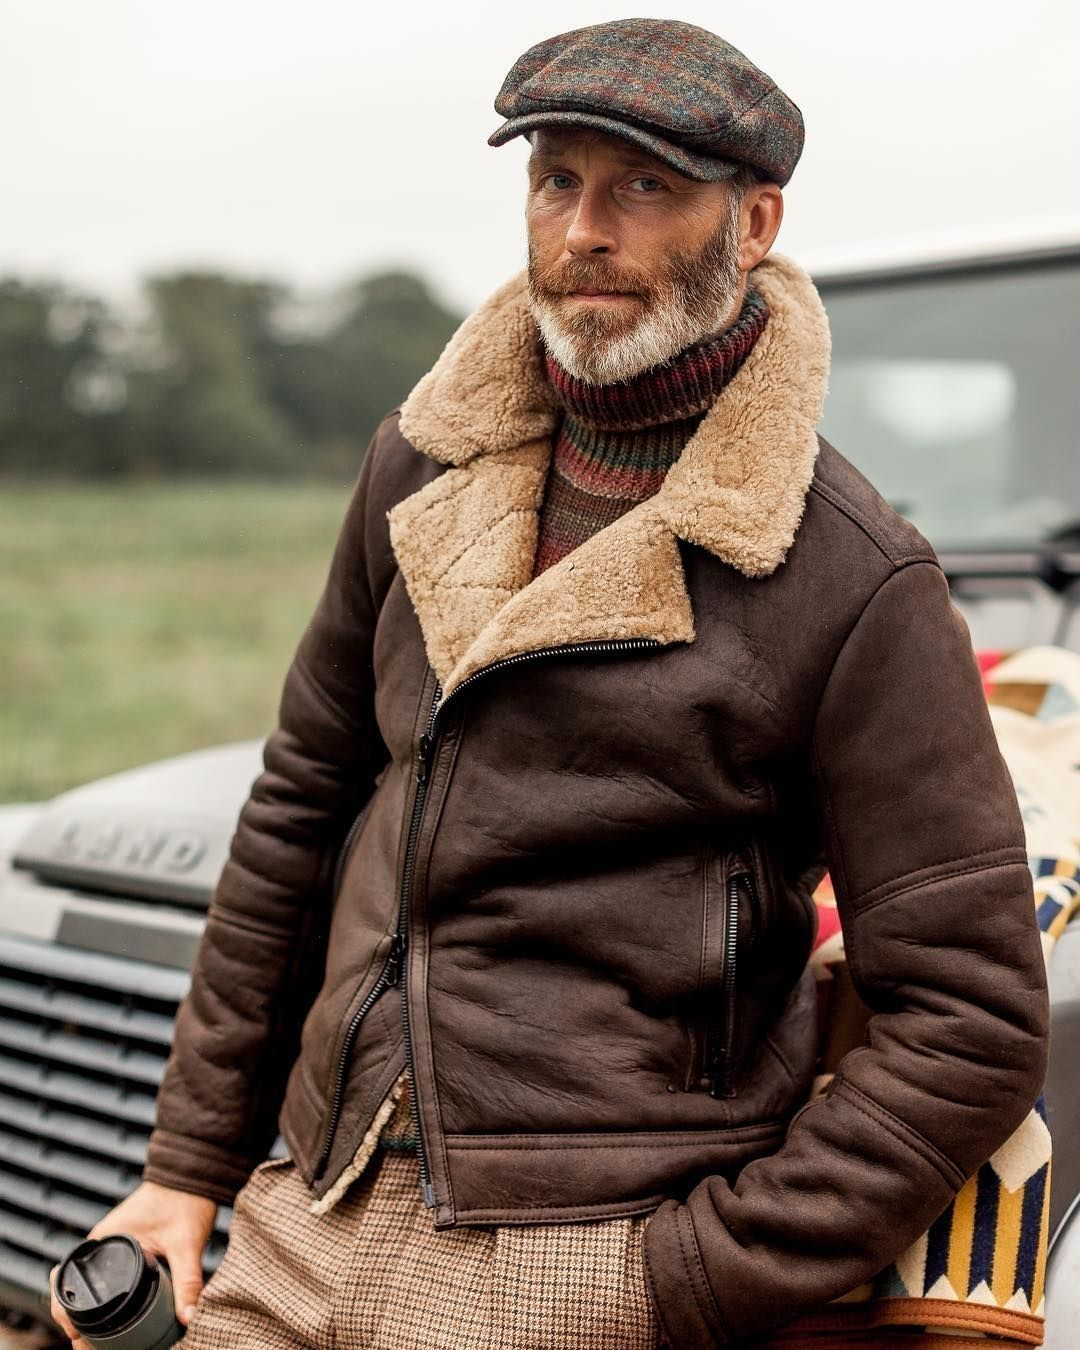 34 Spring 2019 Fashion Ideas for Men Over 50